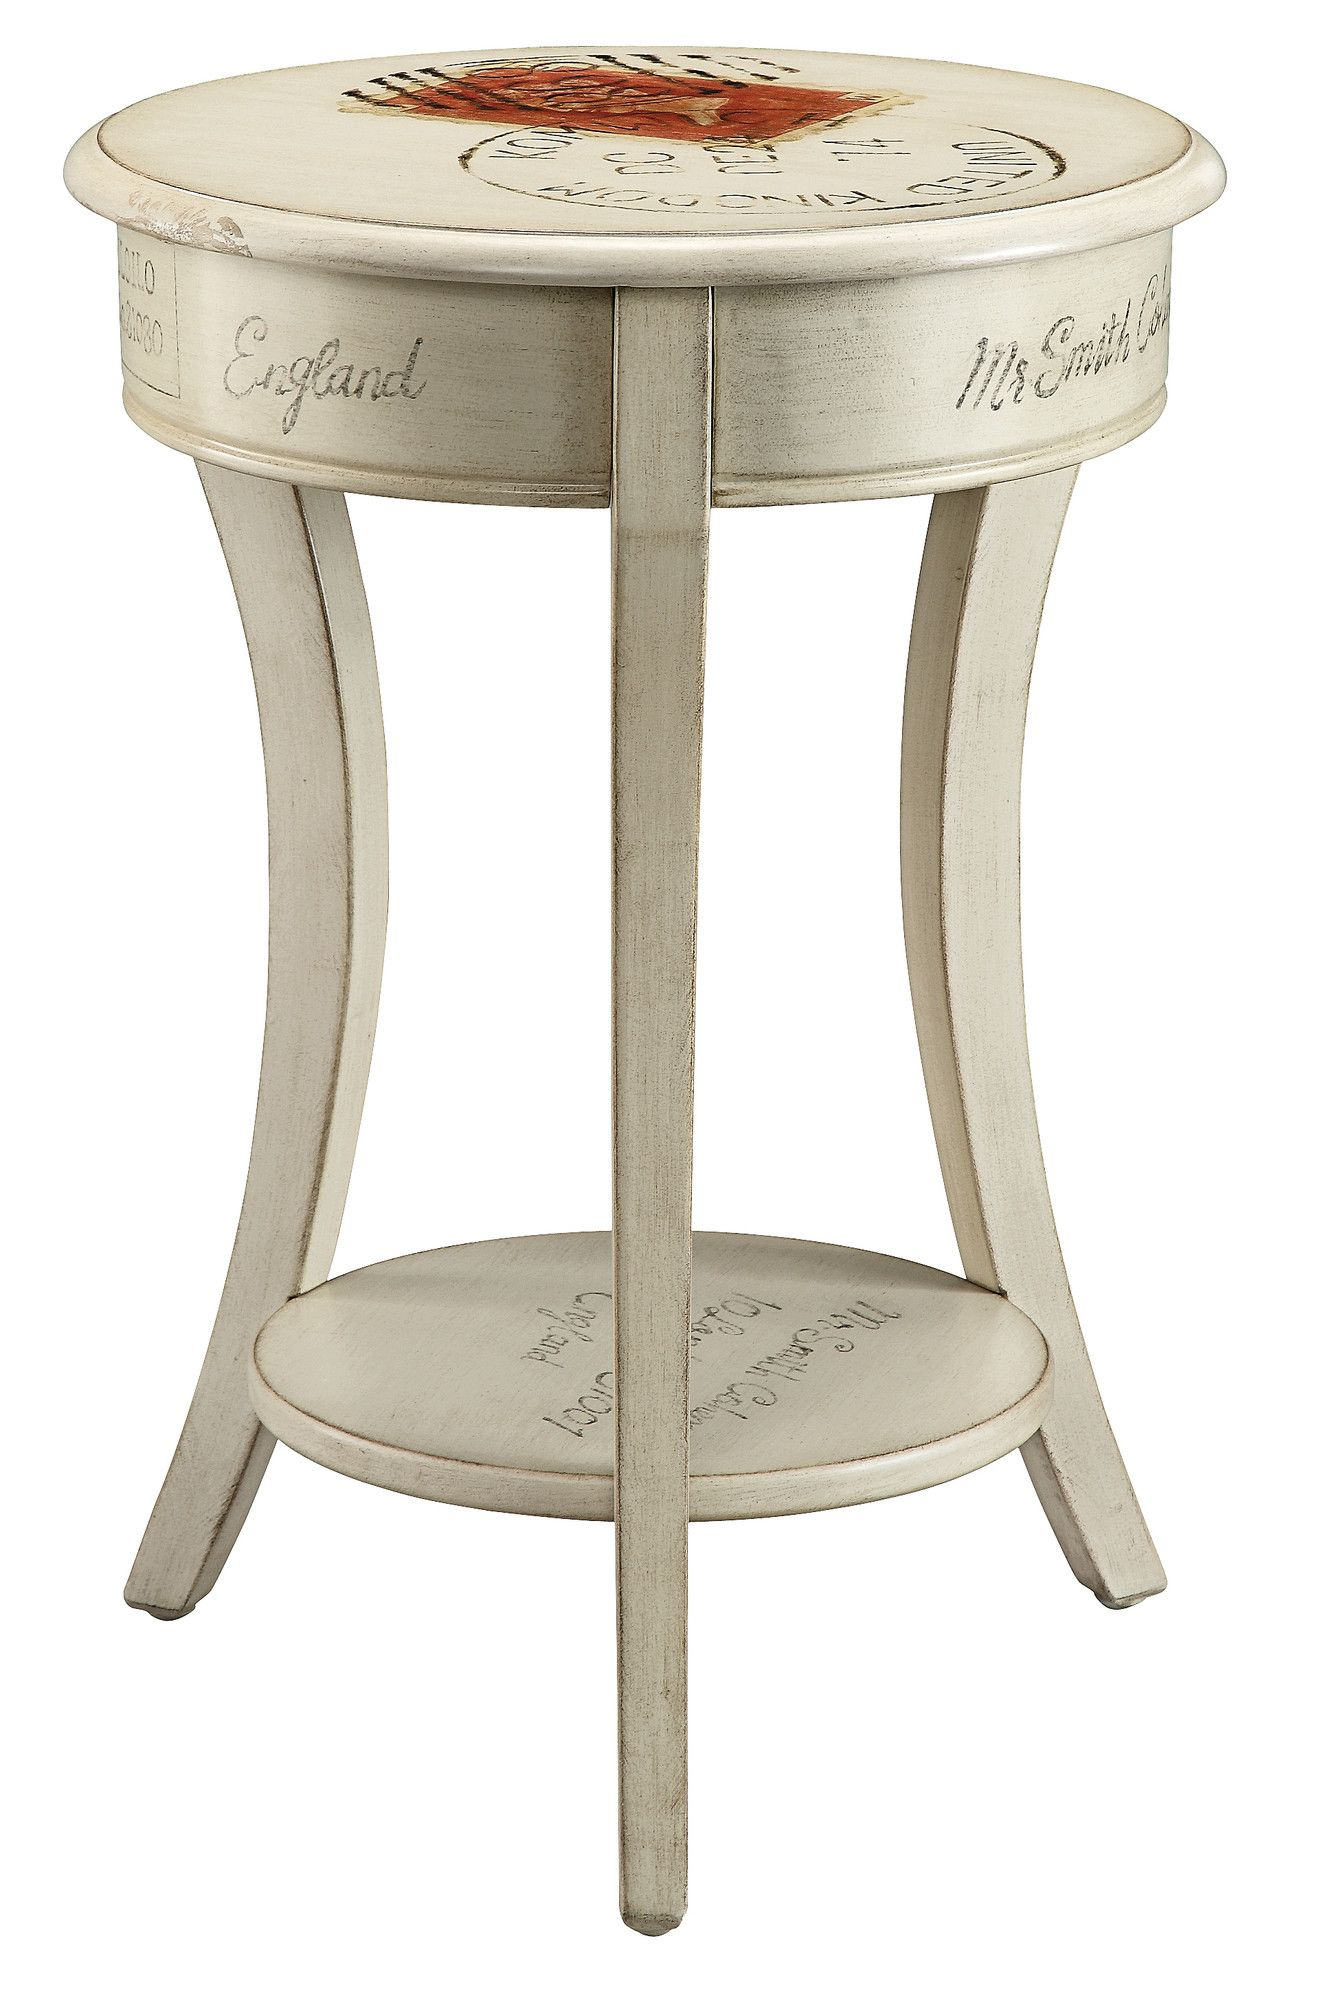 painted treasures curved legs round accent table curves and wood skinny couch white chairs teak end tables indoor piece glass set rustic mirrored big umbrellas for shade living